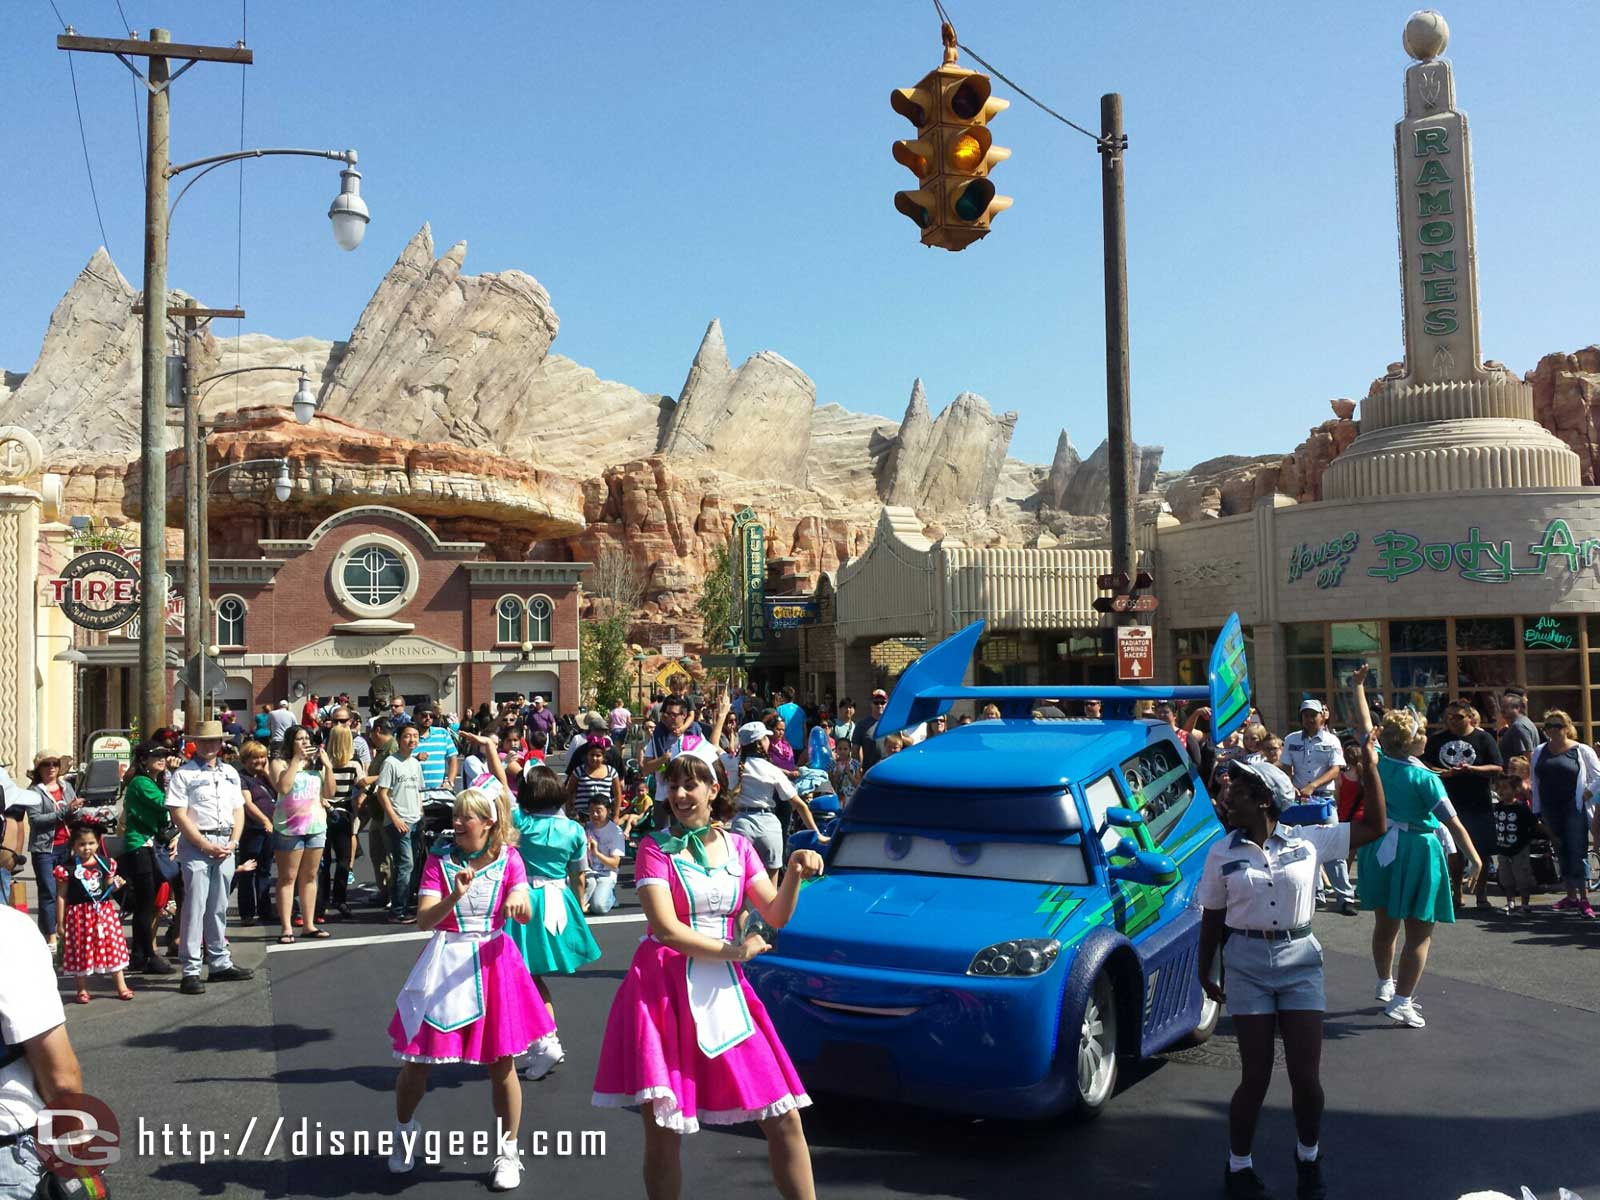 DJs Dance Party going on in #CarsLand